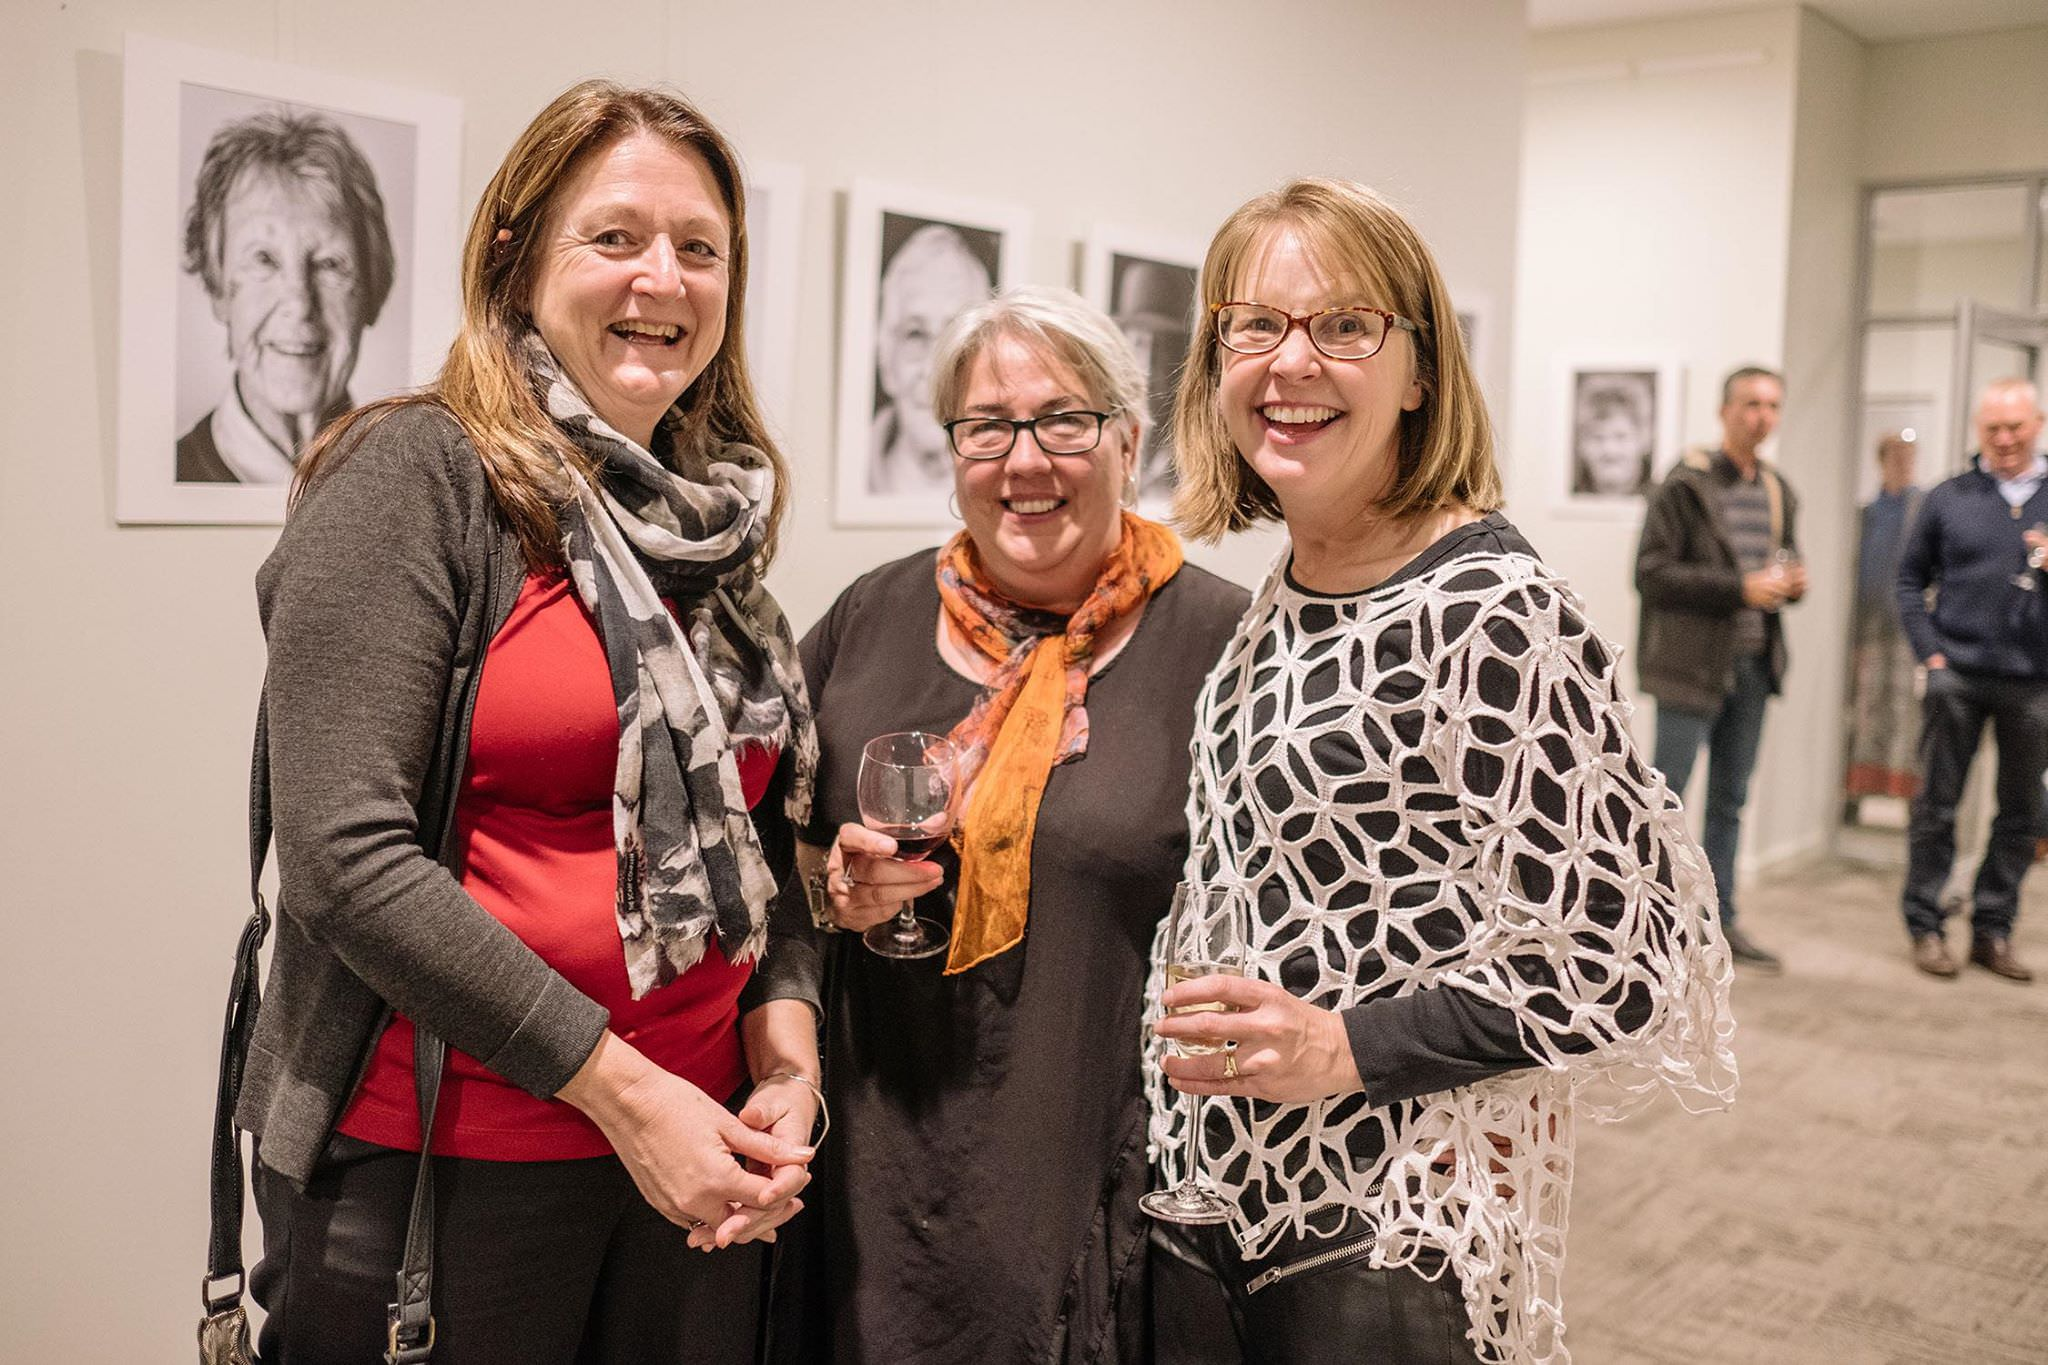 Nicole Wasmann, Caro Telfer, and Kerryn Chia at the Faces of West Arthur exhibition in Darkan